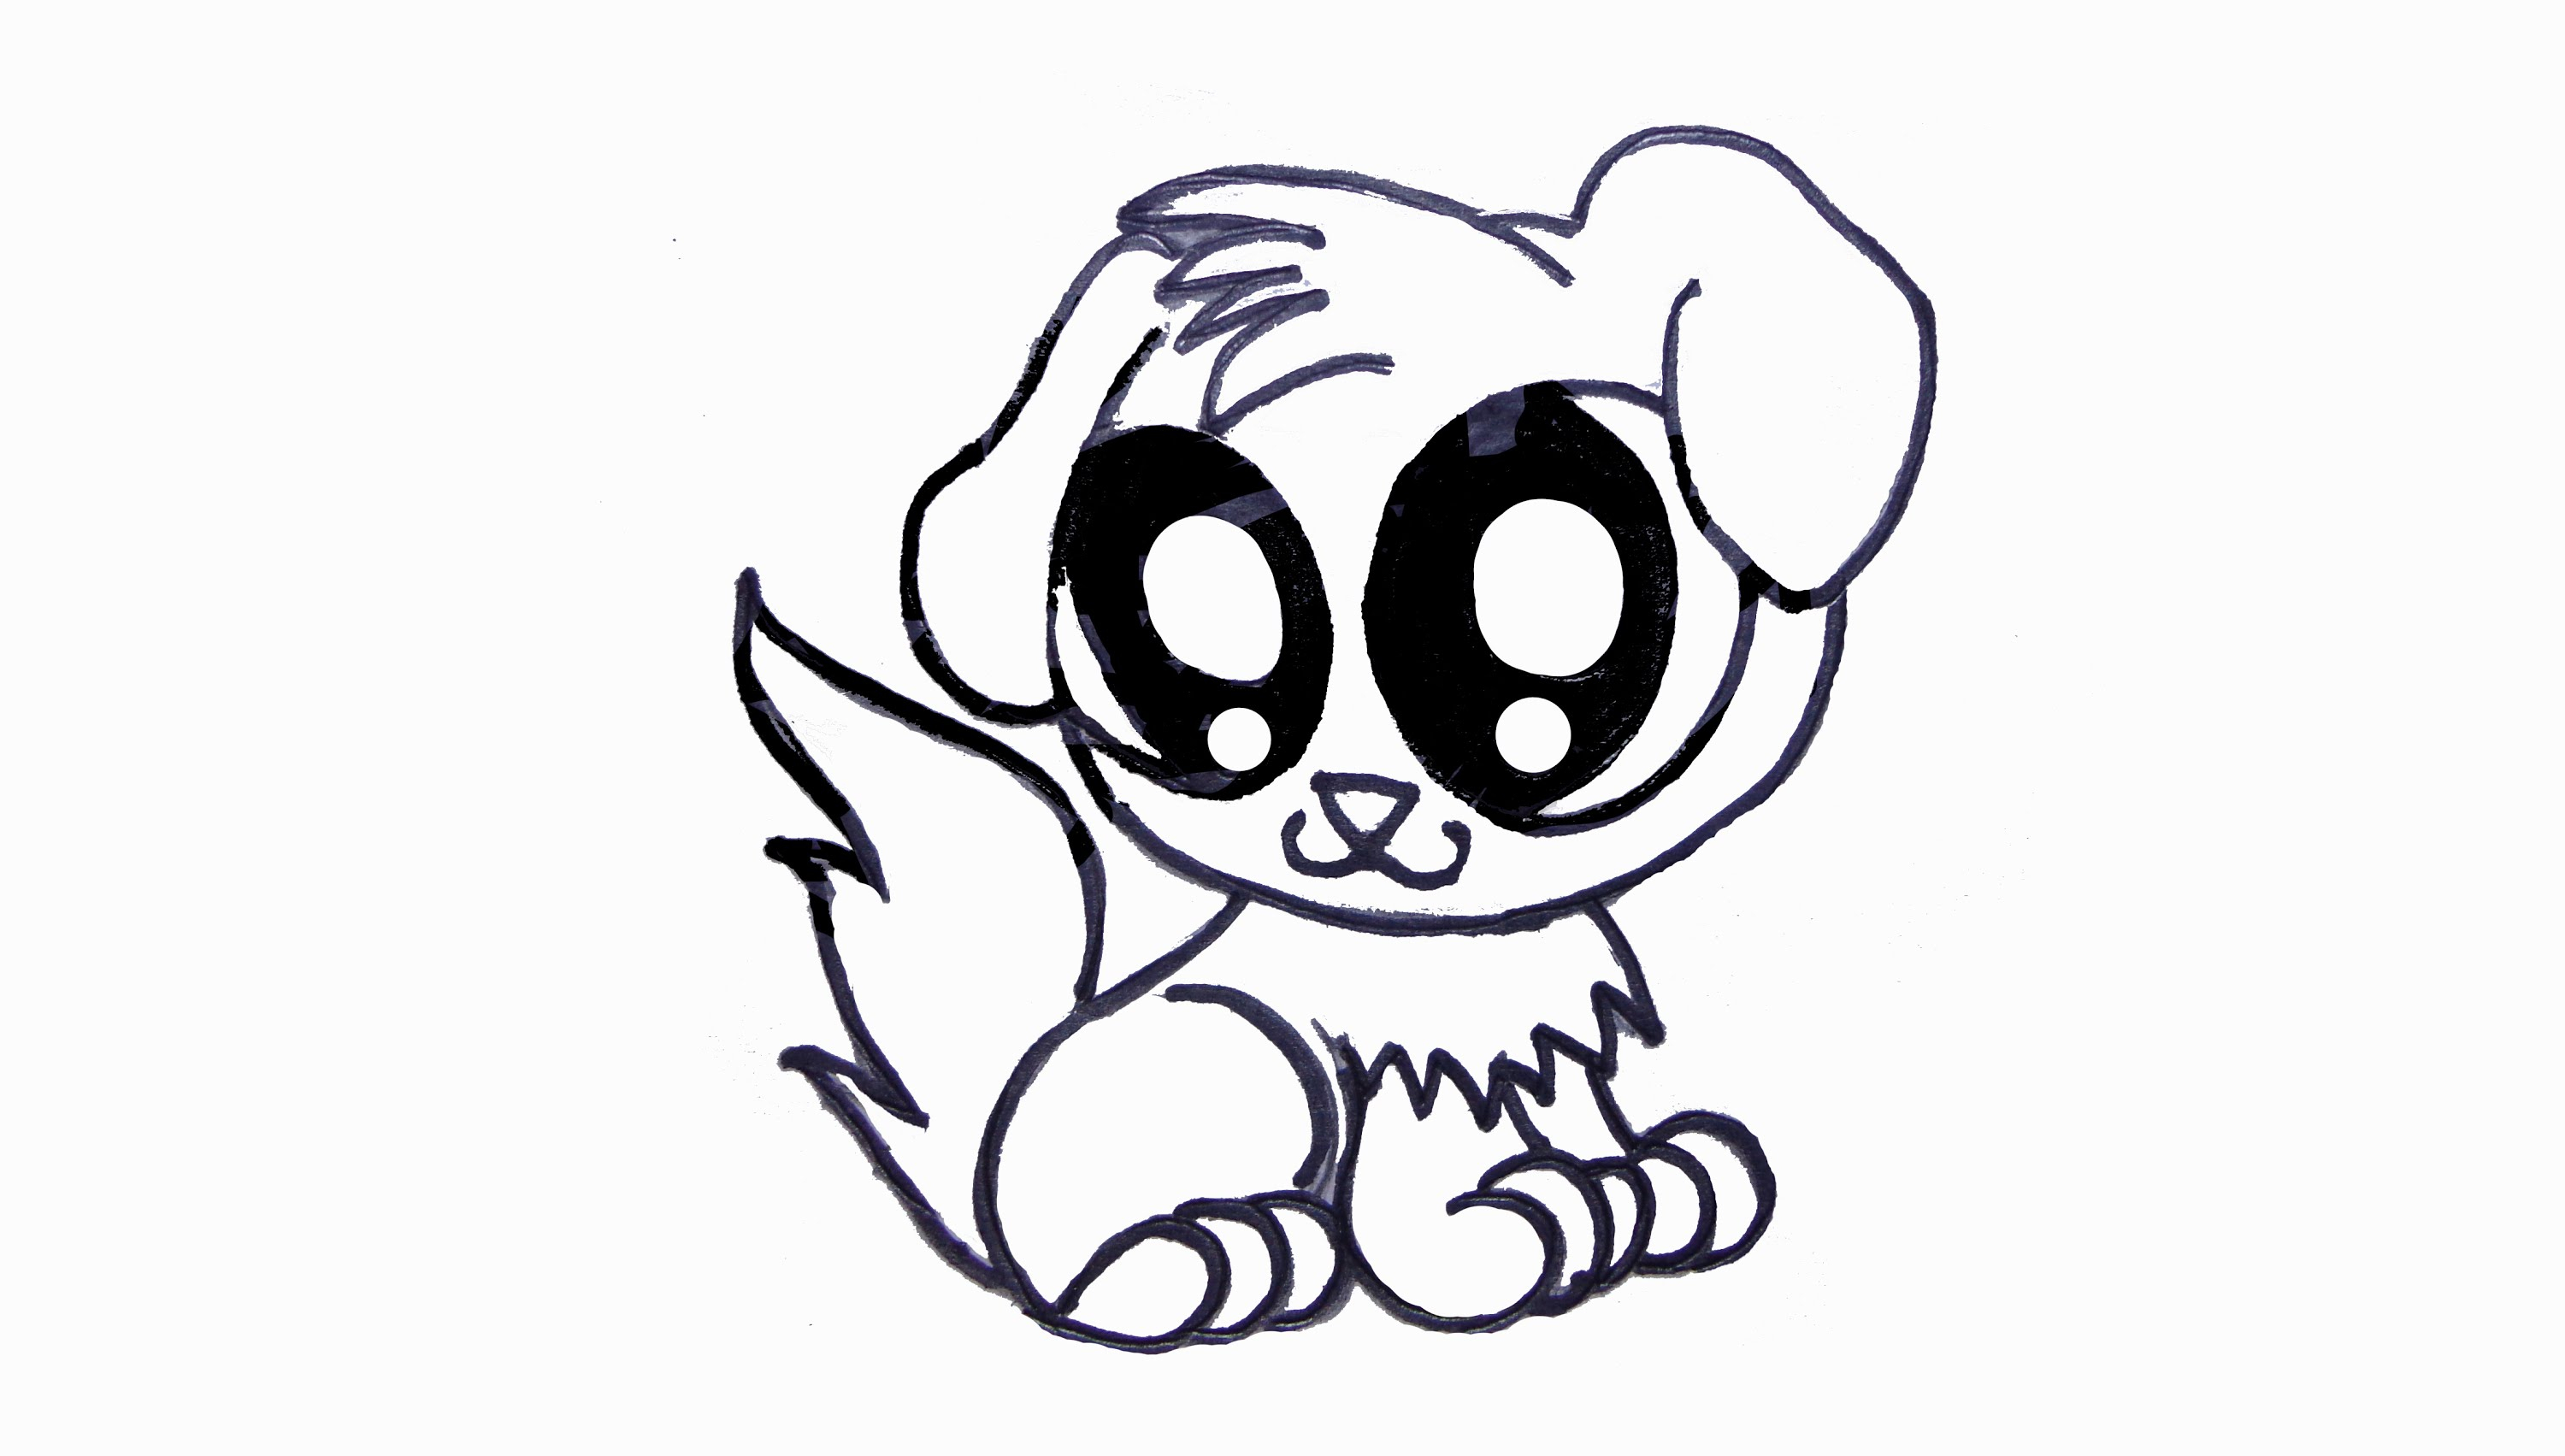 3000x1703 Cute Drawings For Kids How To Draw A Cute Puppy